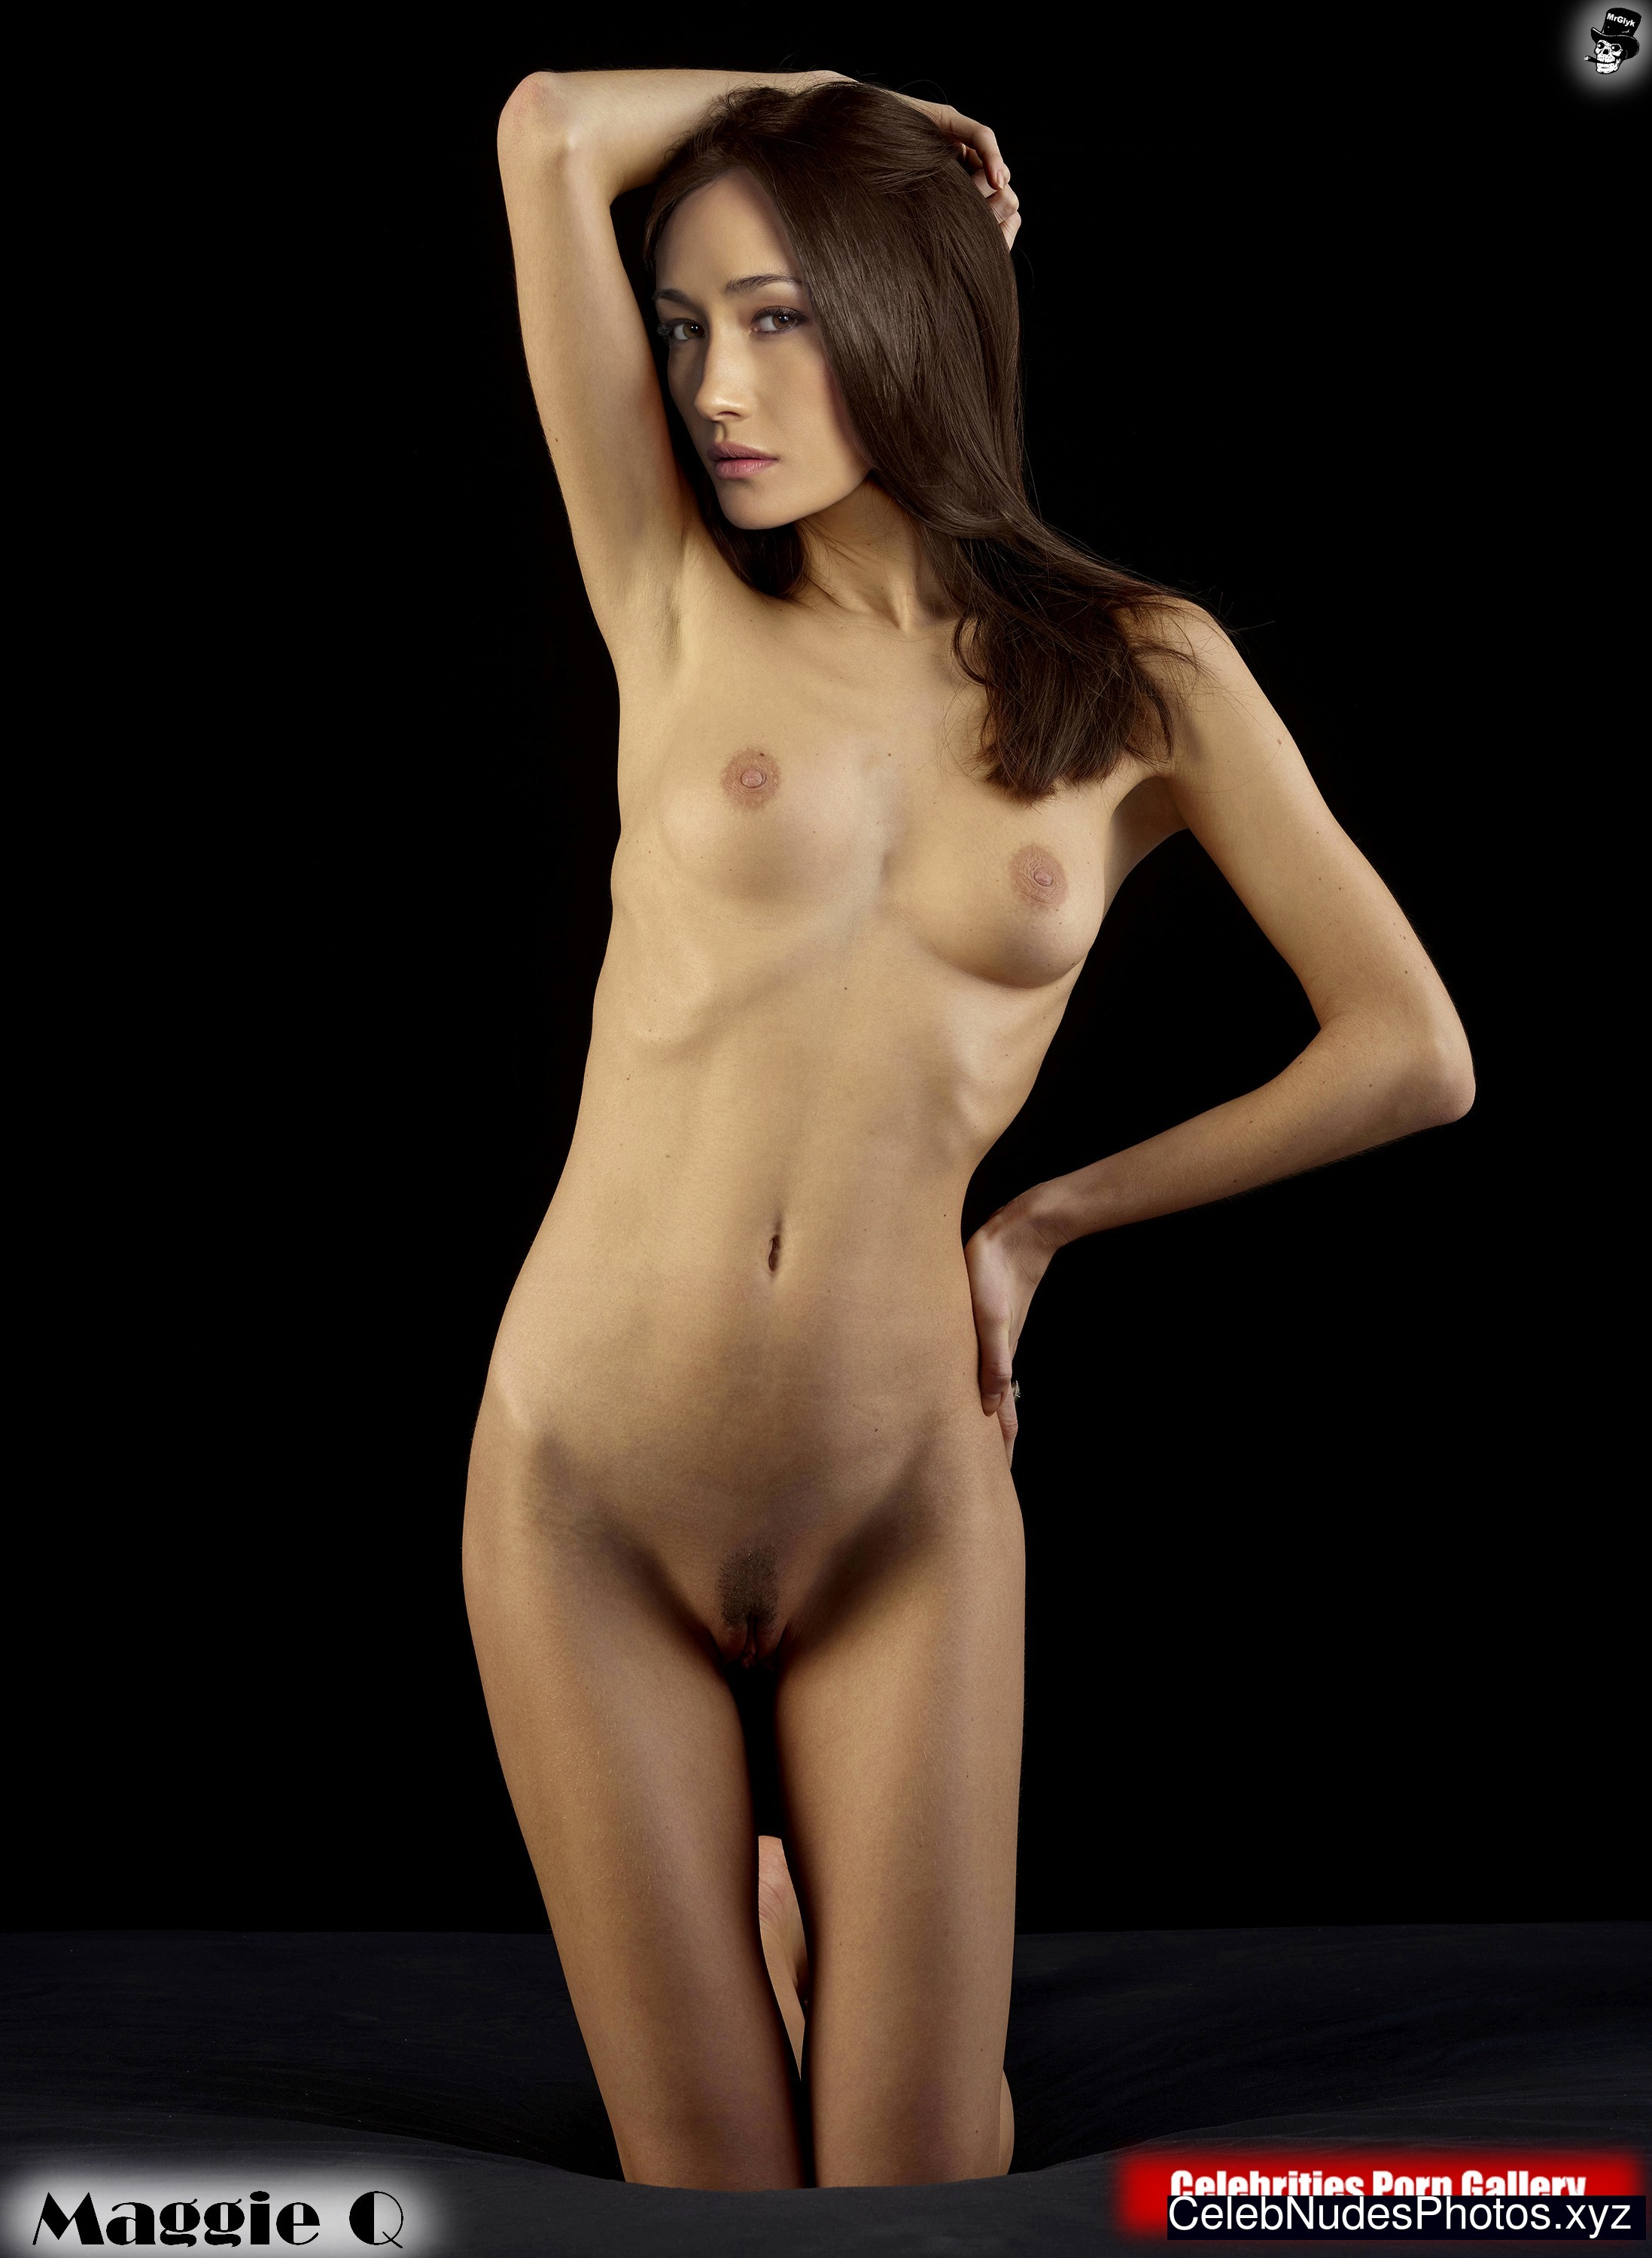 Maggie Quigley naked